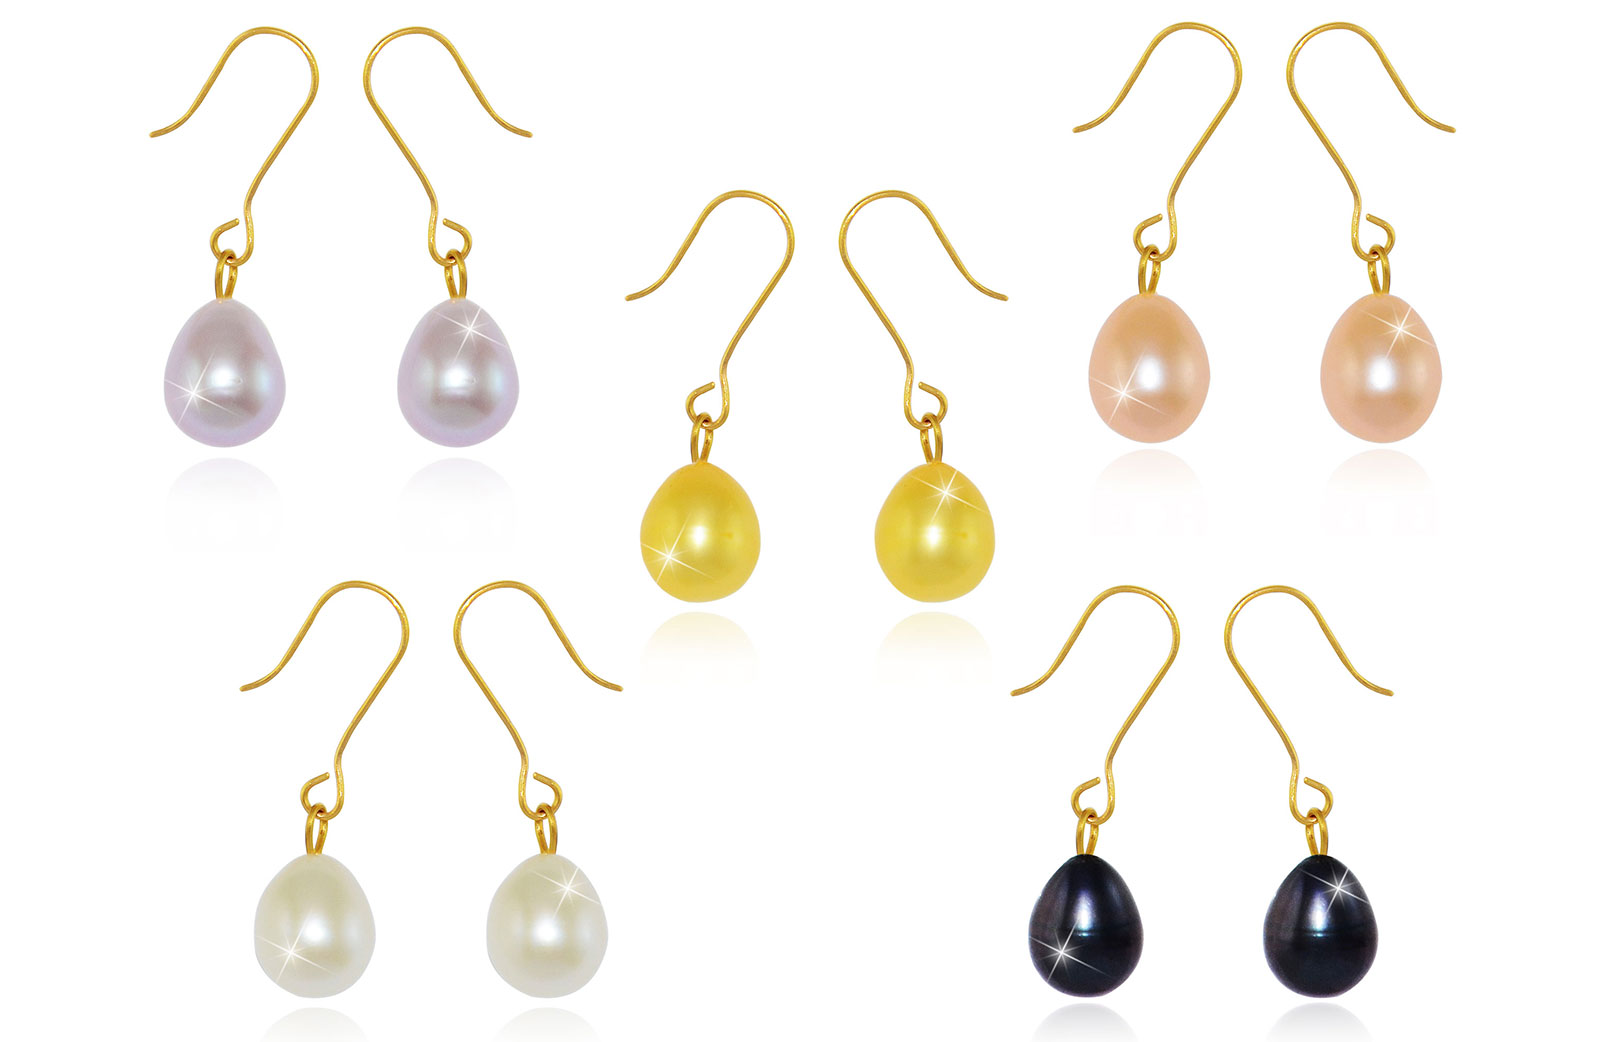 Vera Perla 10K Gold 7mm Pearls 5 Pairs Earrings